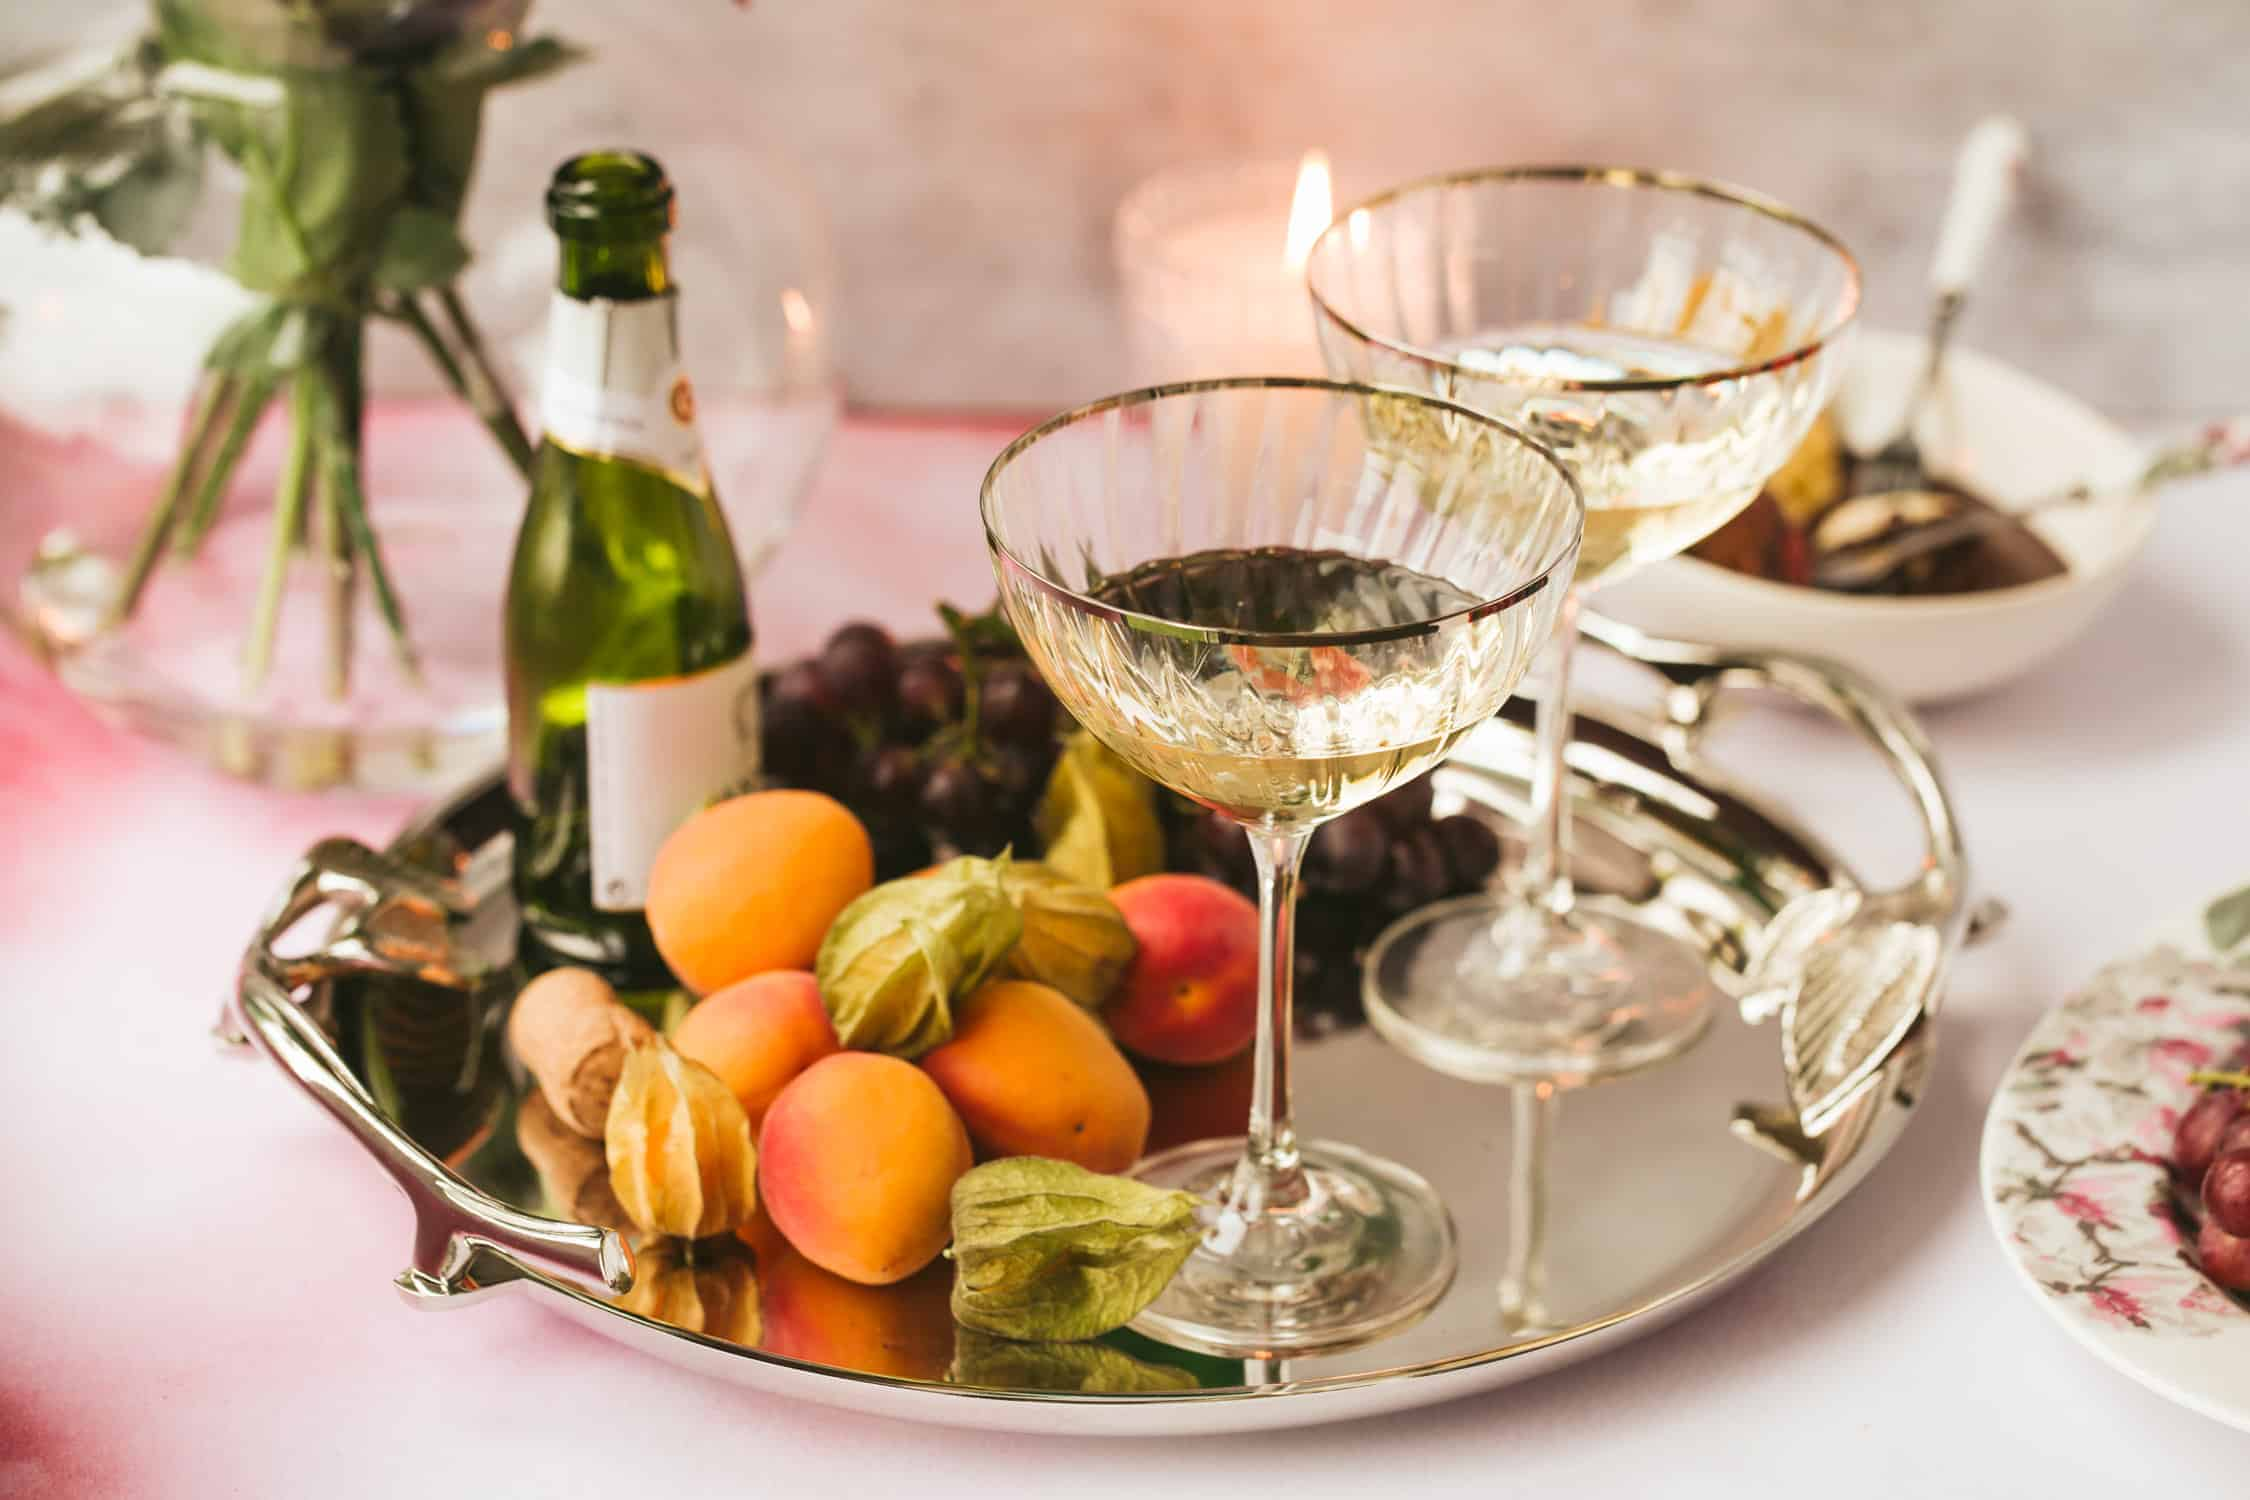 A silver tray with champagne saucers and fresh fruit.